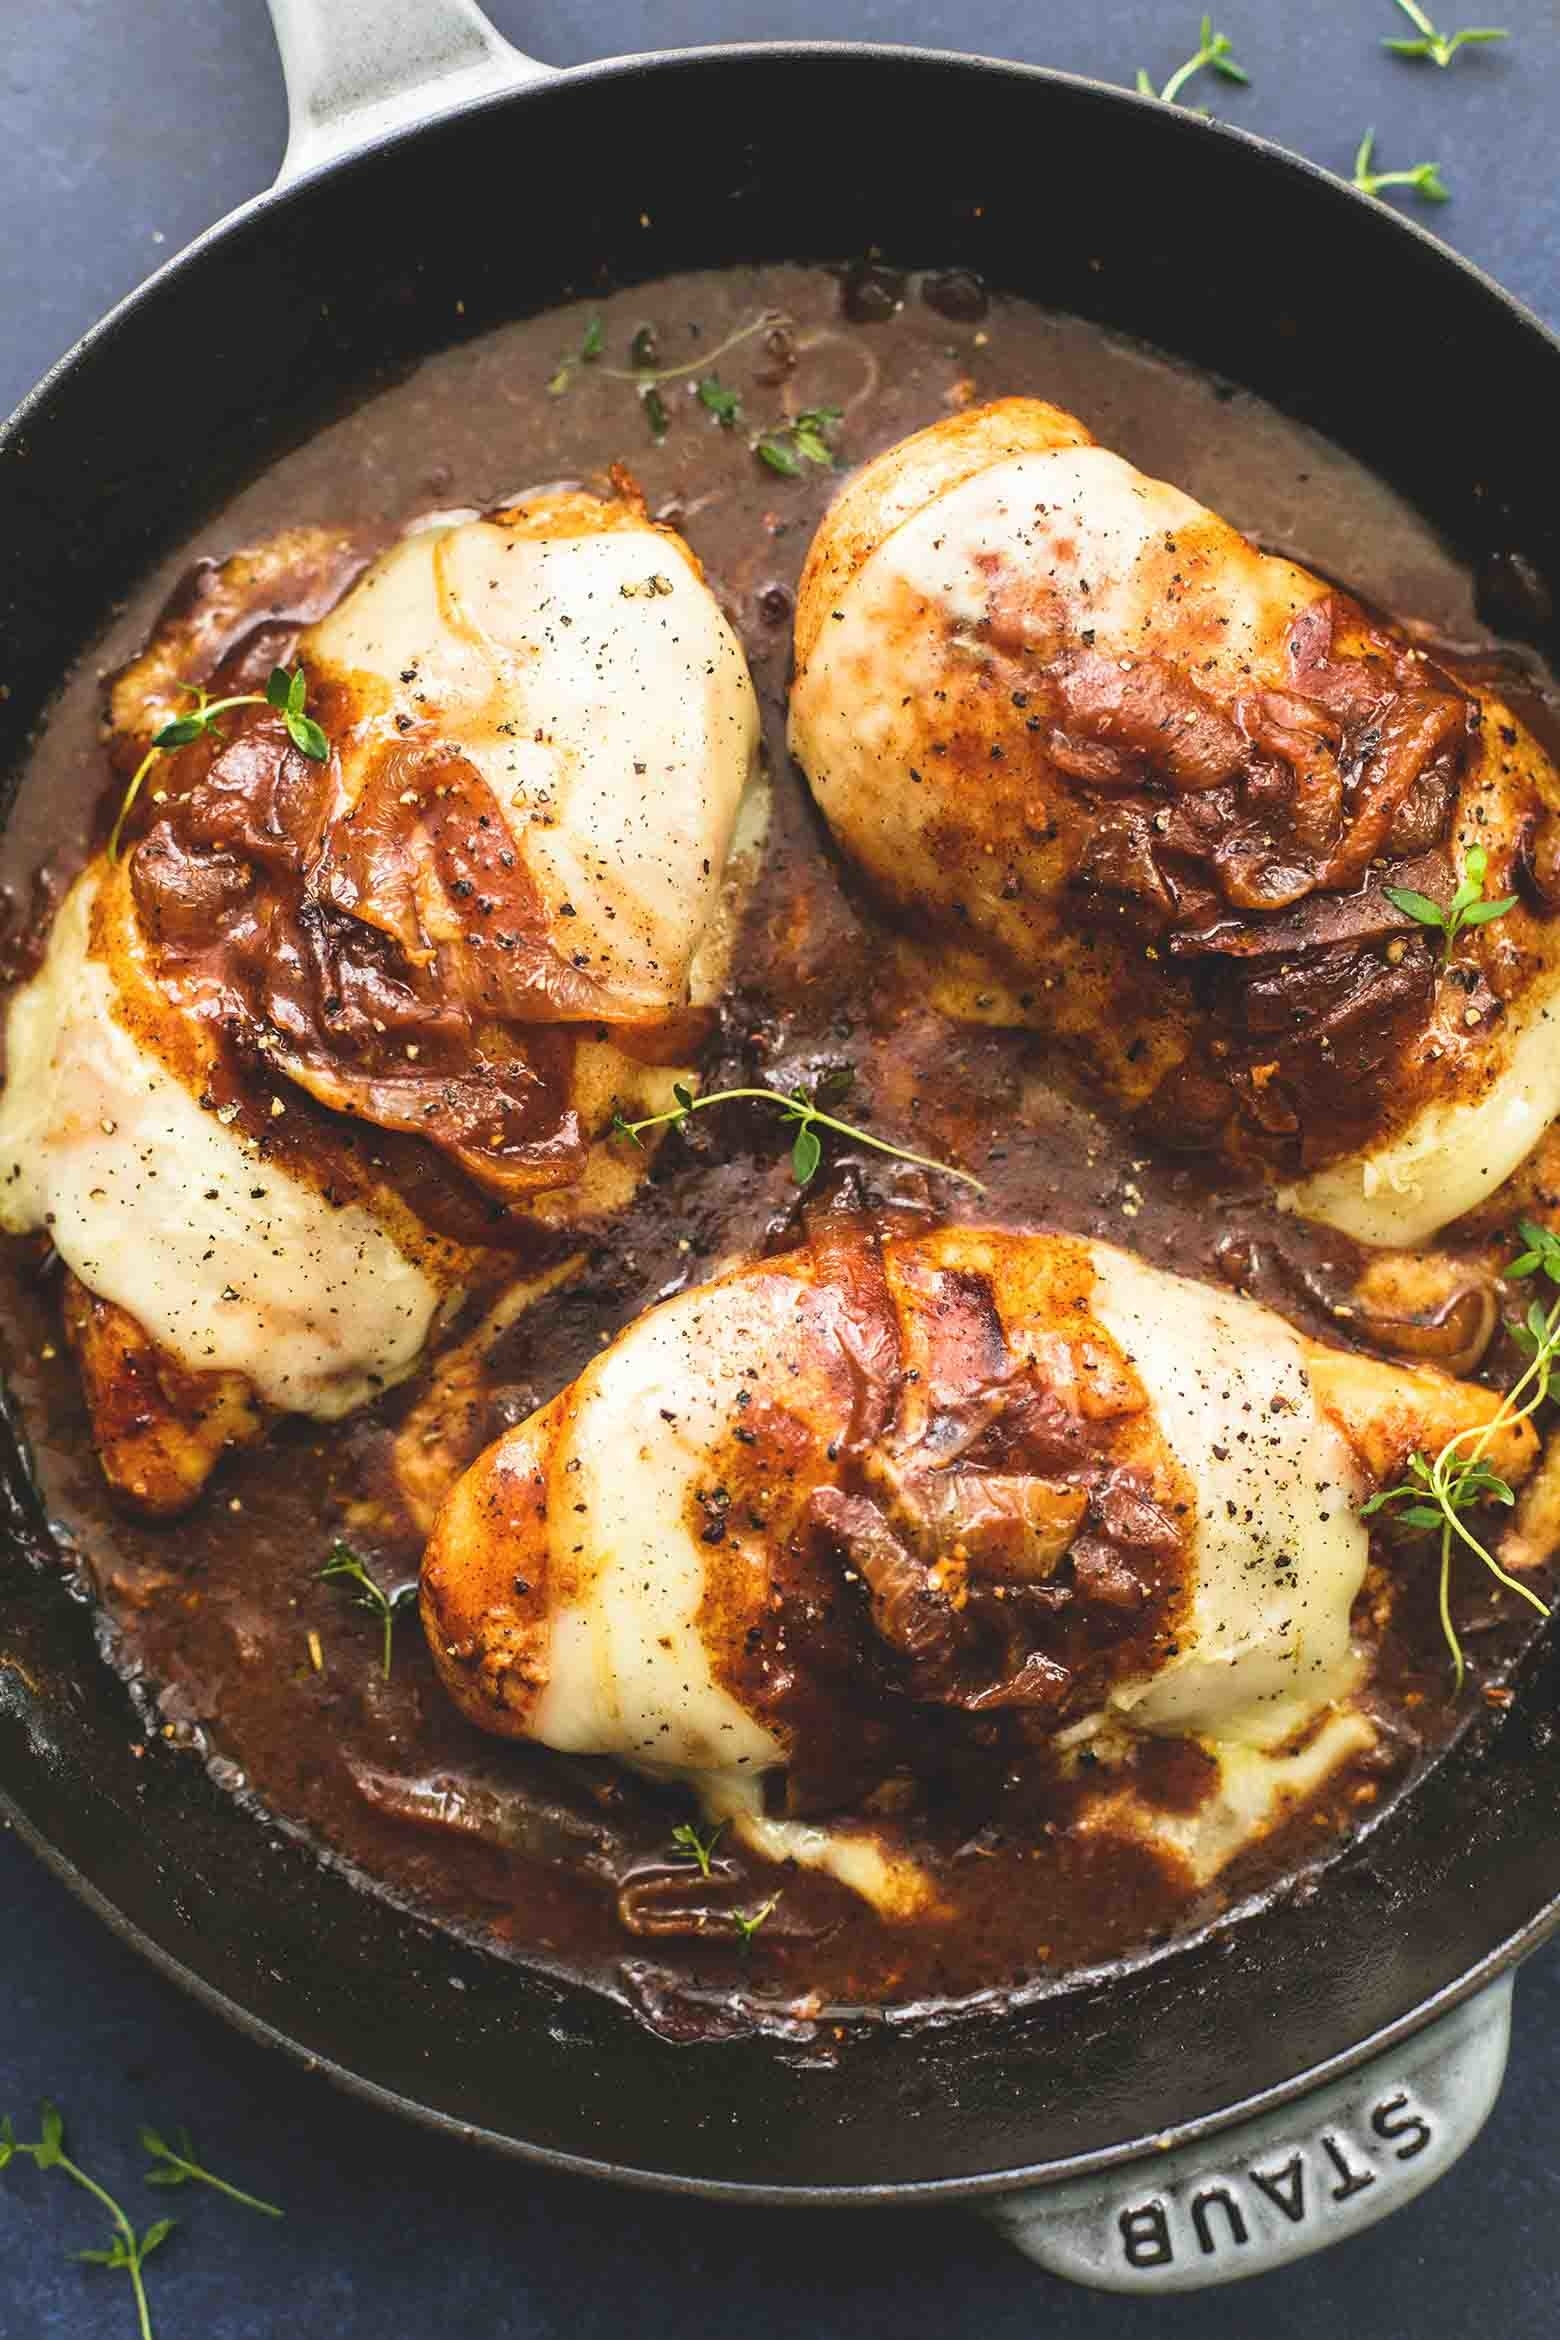 If you love French onion soup, you'll love this chicken seasoned with all of the same flavors. Topped with melty cheese, it's peak comfort food. Get the recipe.